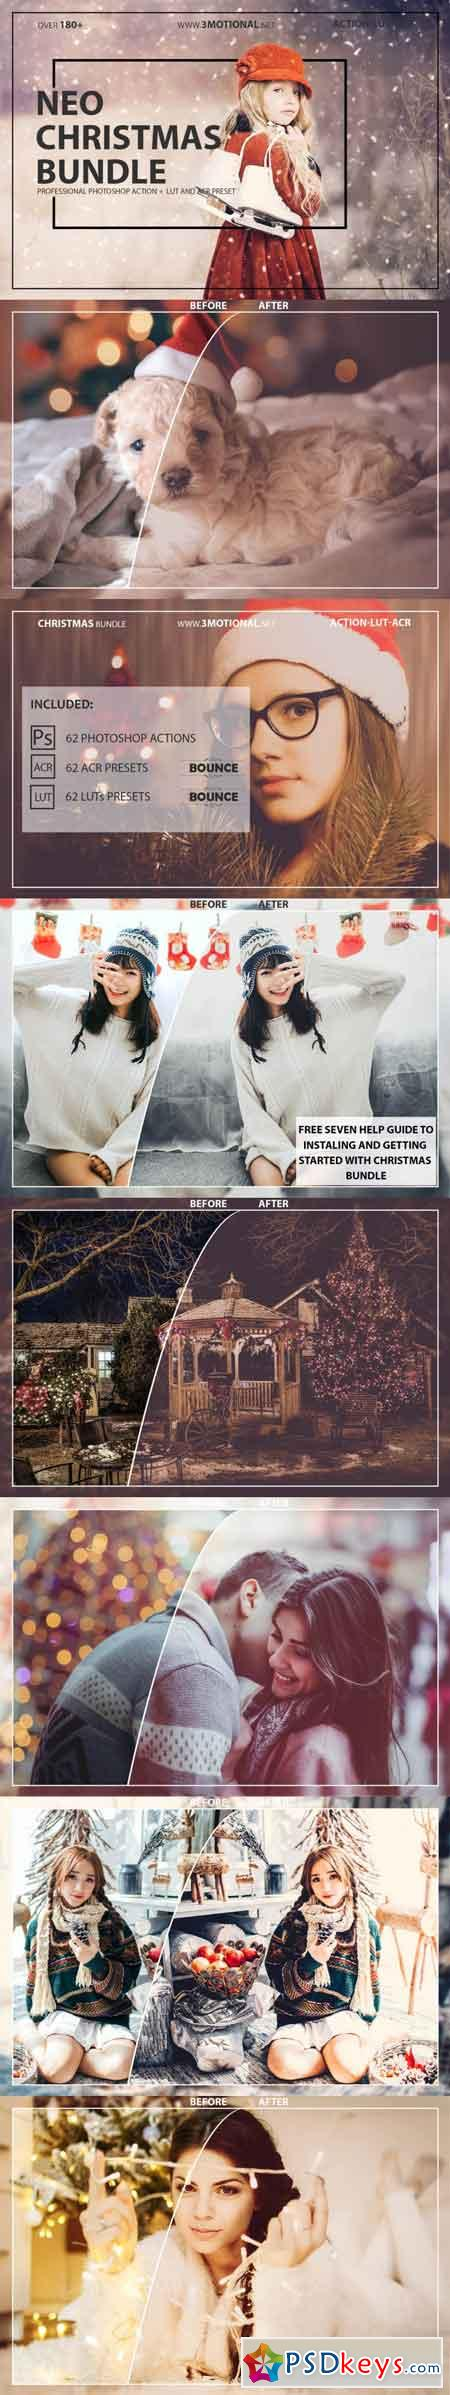 Neo Christmas Theme Bundle Color Grading photoshop action,ACR,LUT 3516654